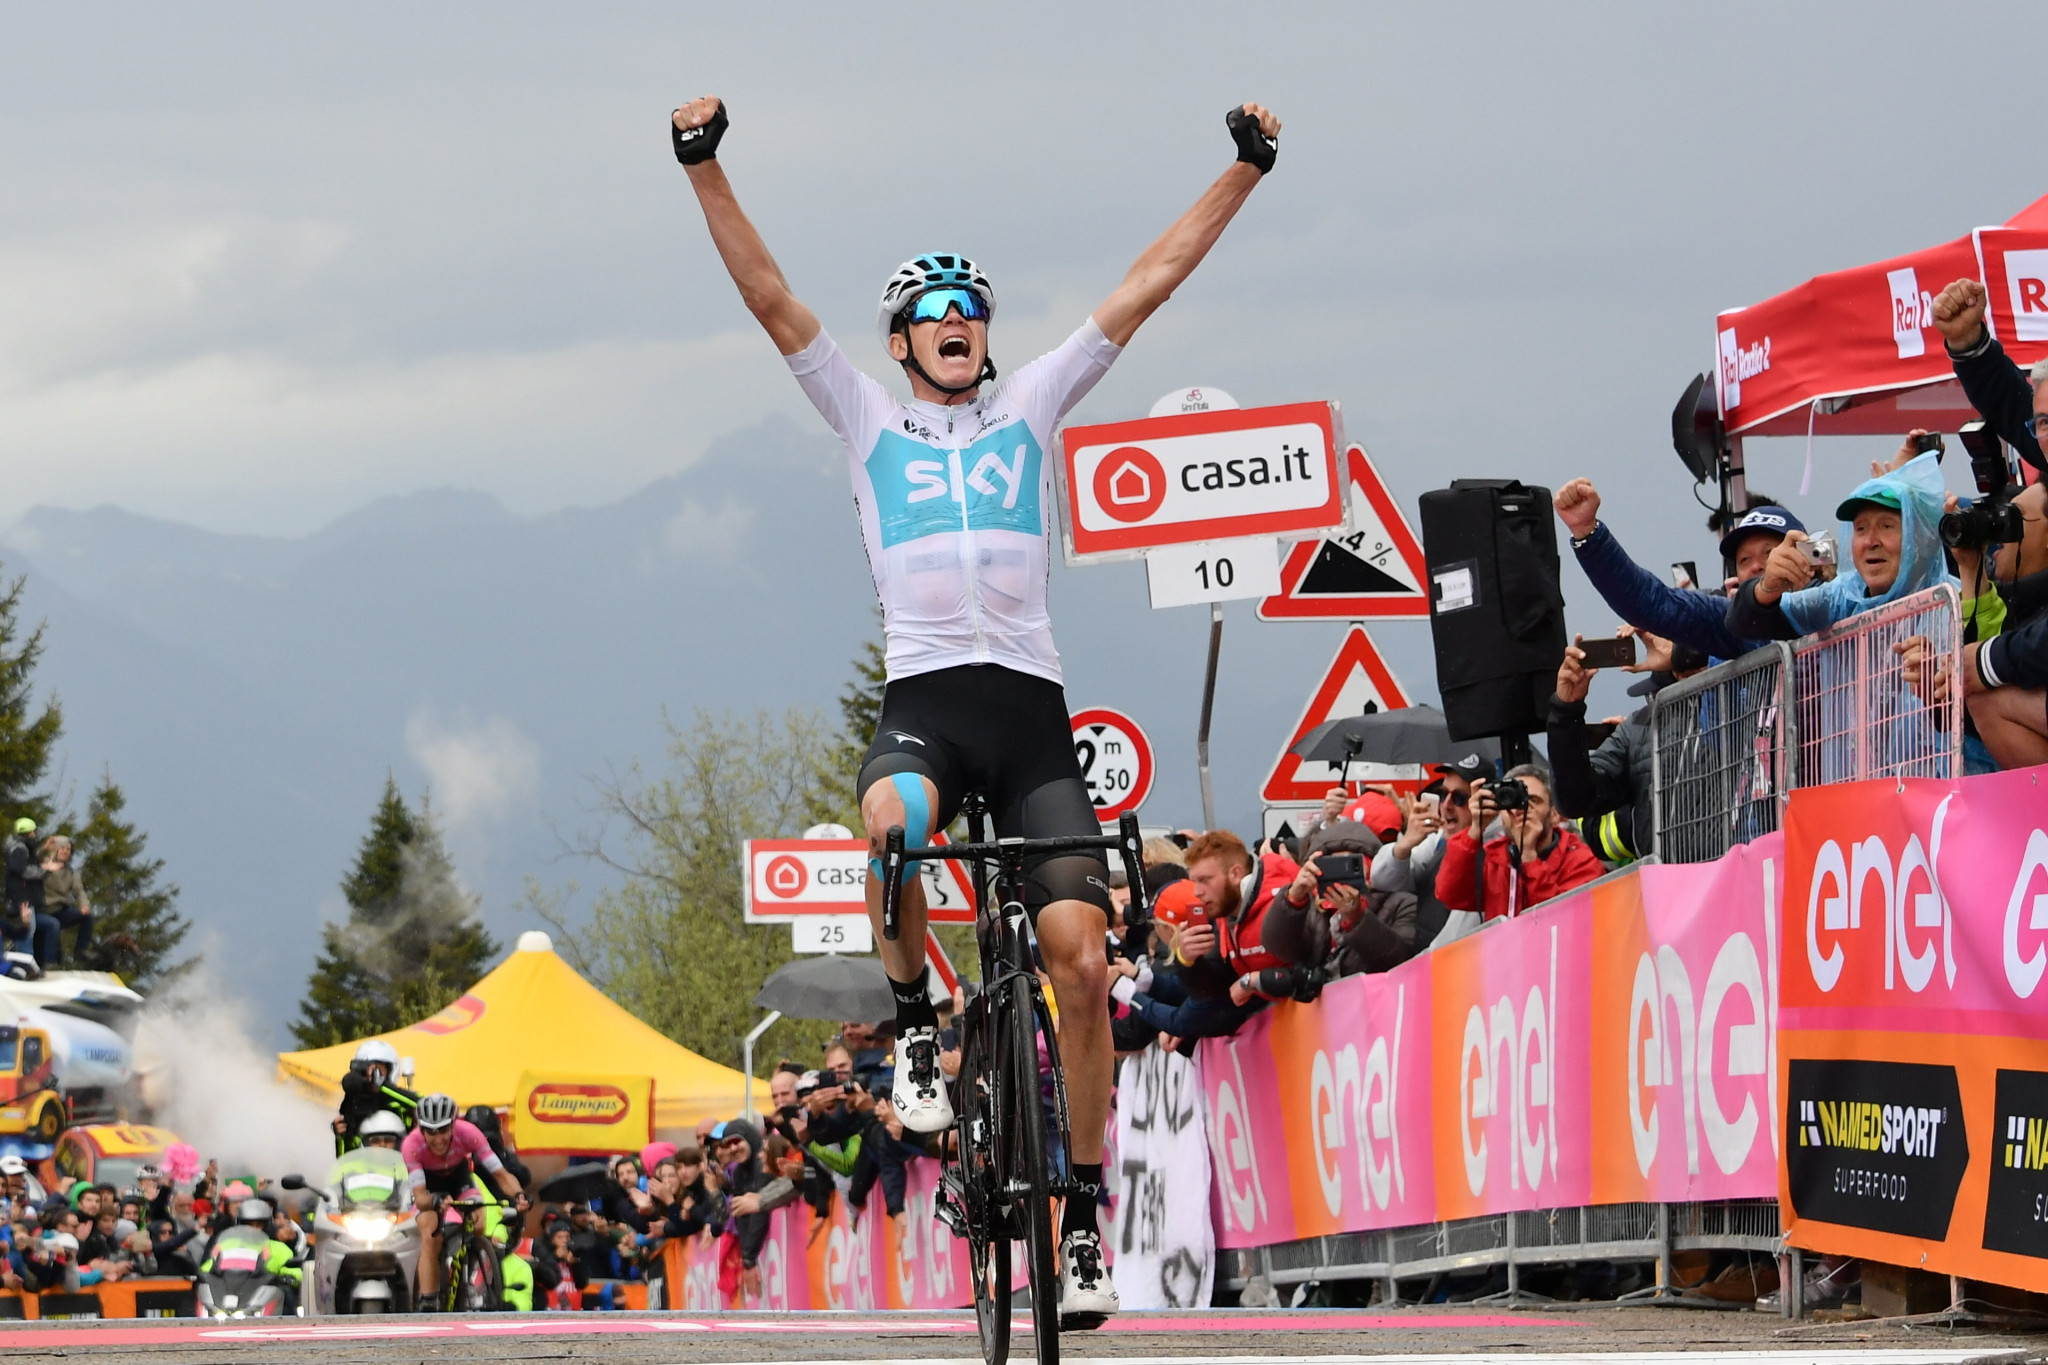 Froome finds form on Monte Zoncolan to claim stage win as Yates extends Giro d'Italia race lead